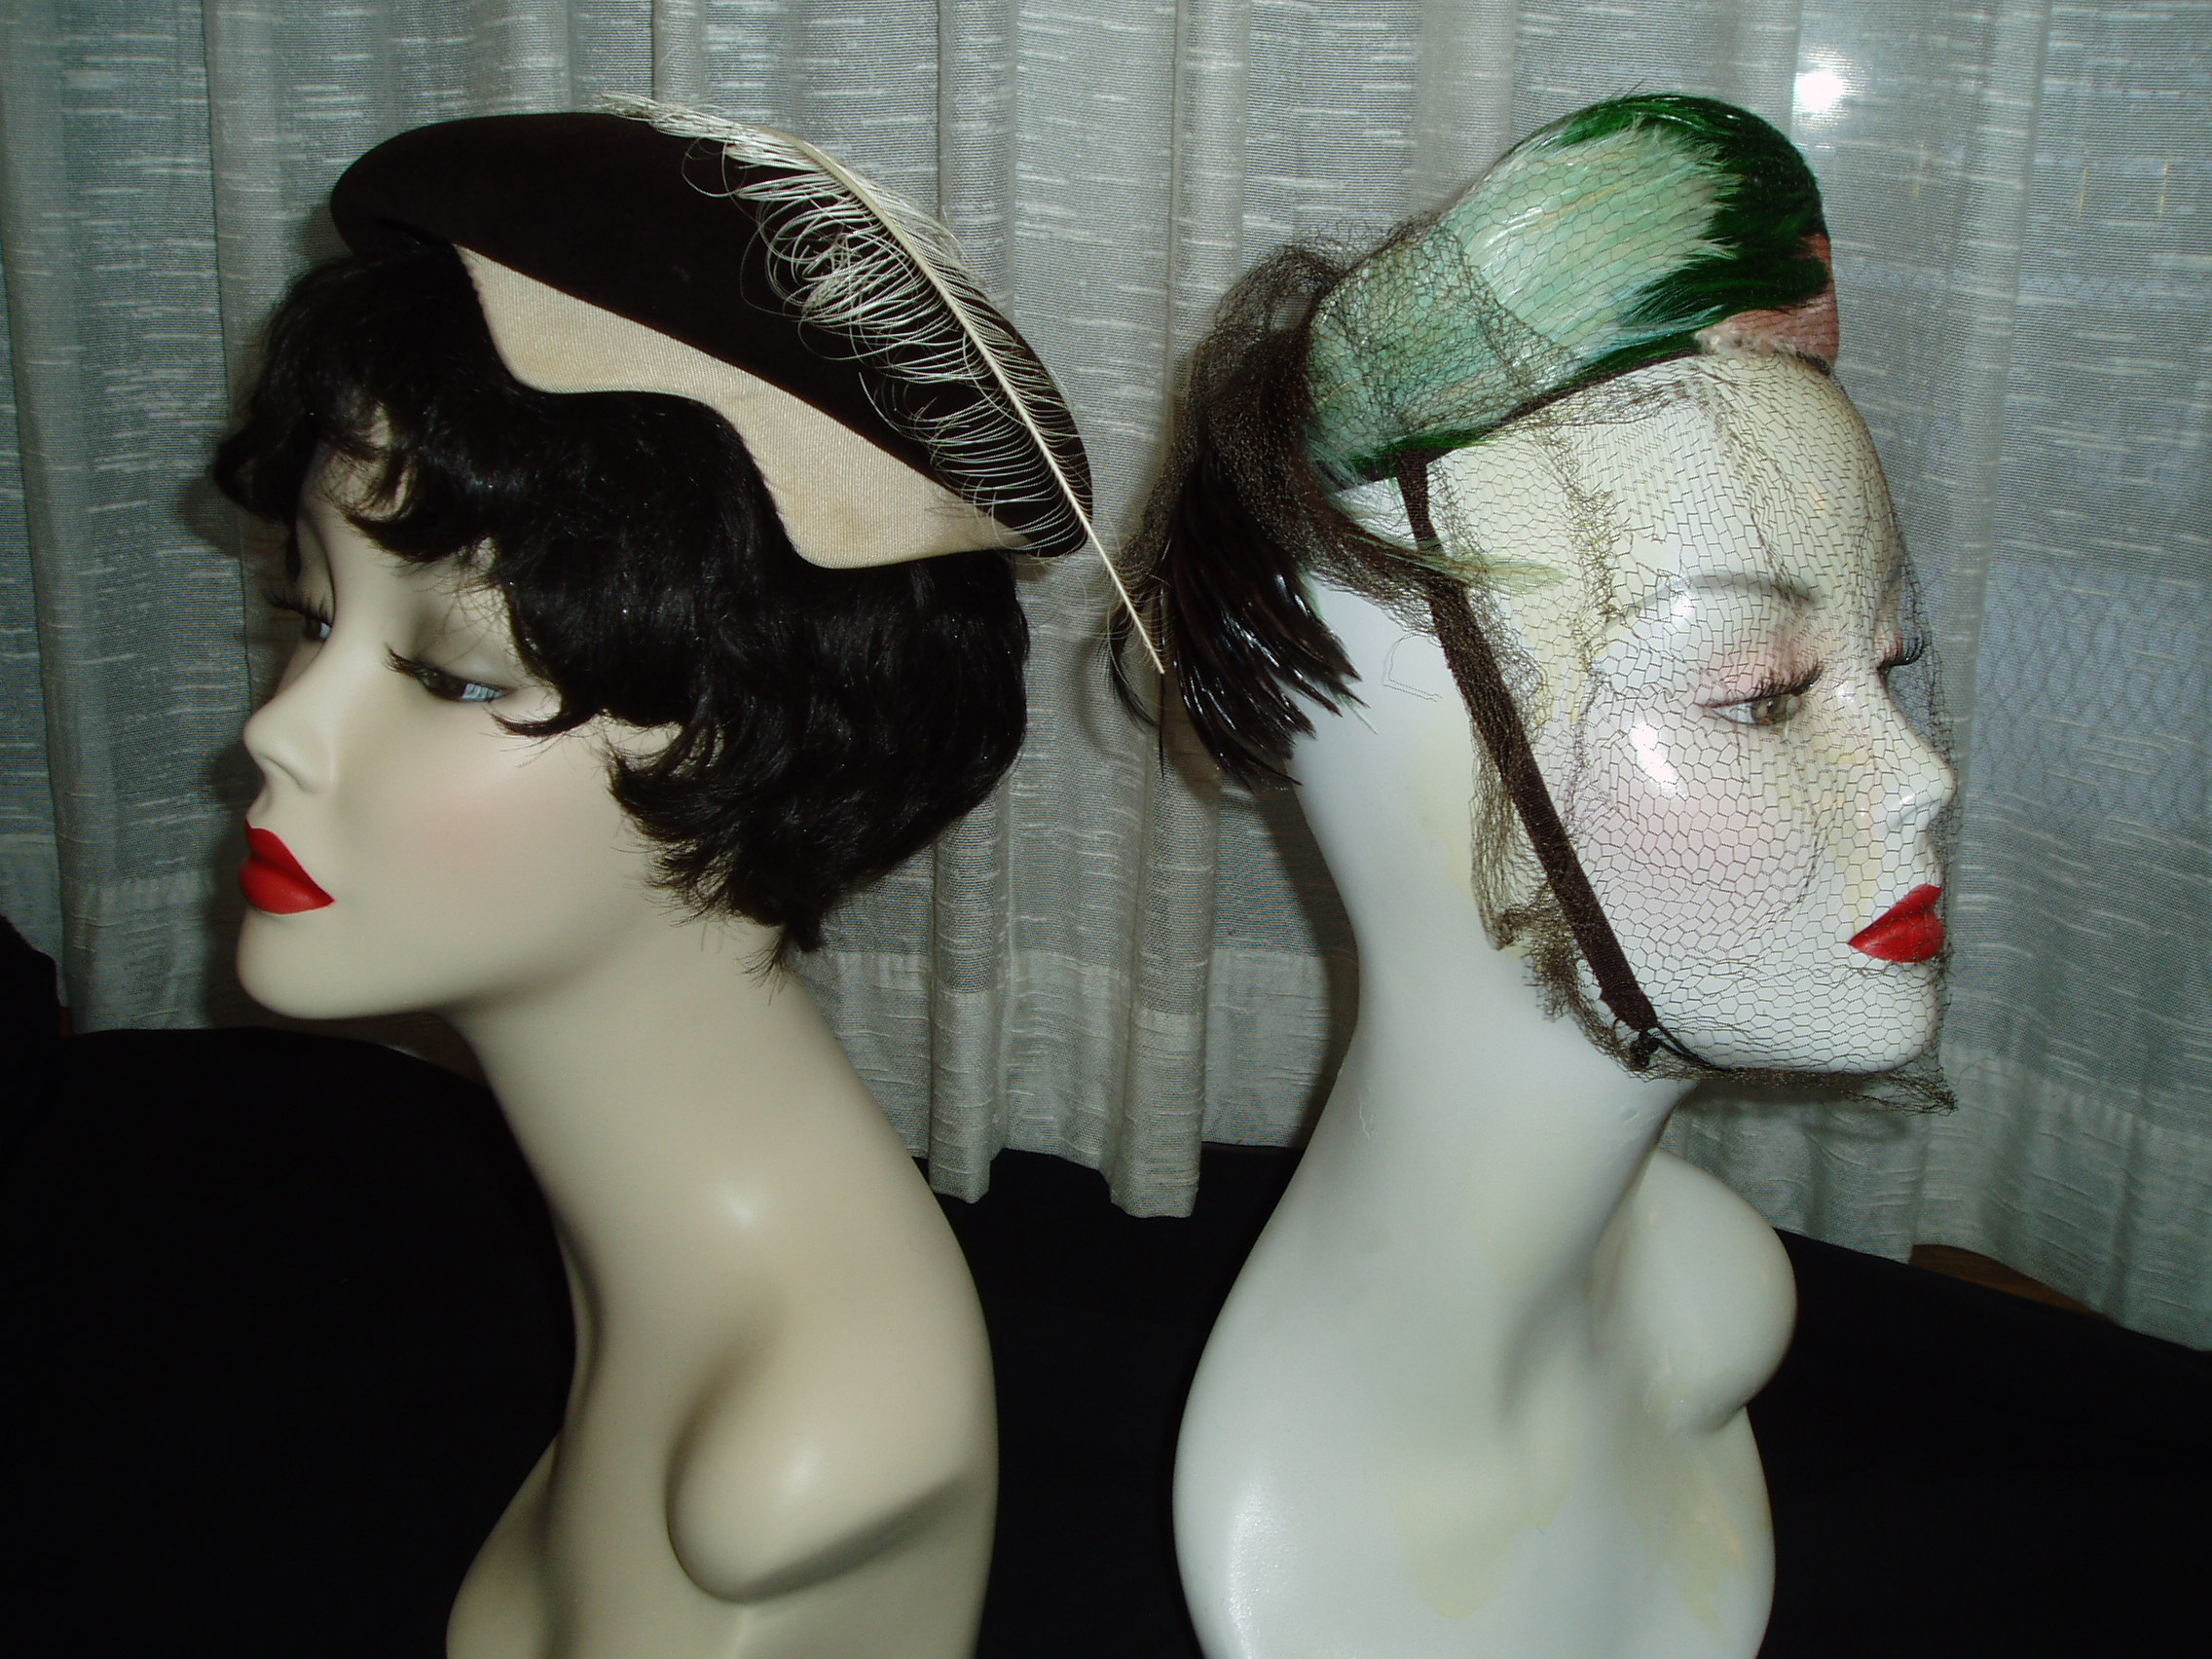 FOR CHURCH OR A ST. PATRICK'S DAY DRESSY EVENT, A GREEN FEATHER HAT IS CHIC!